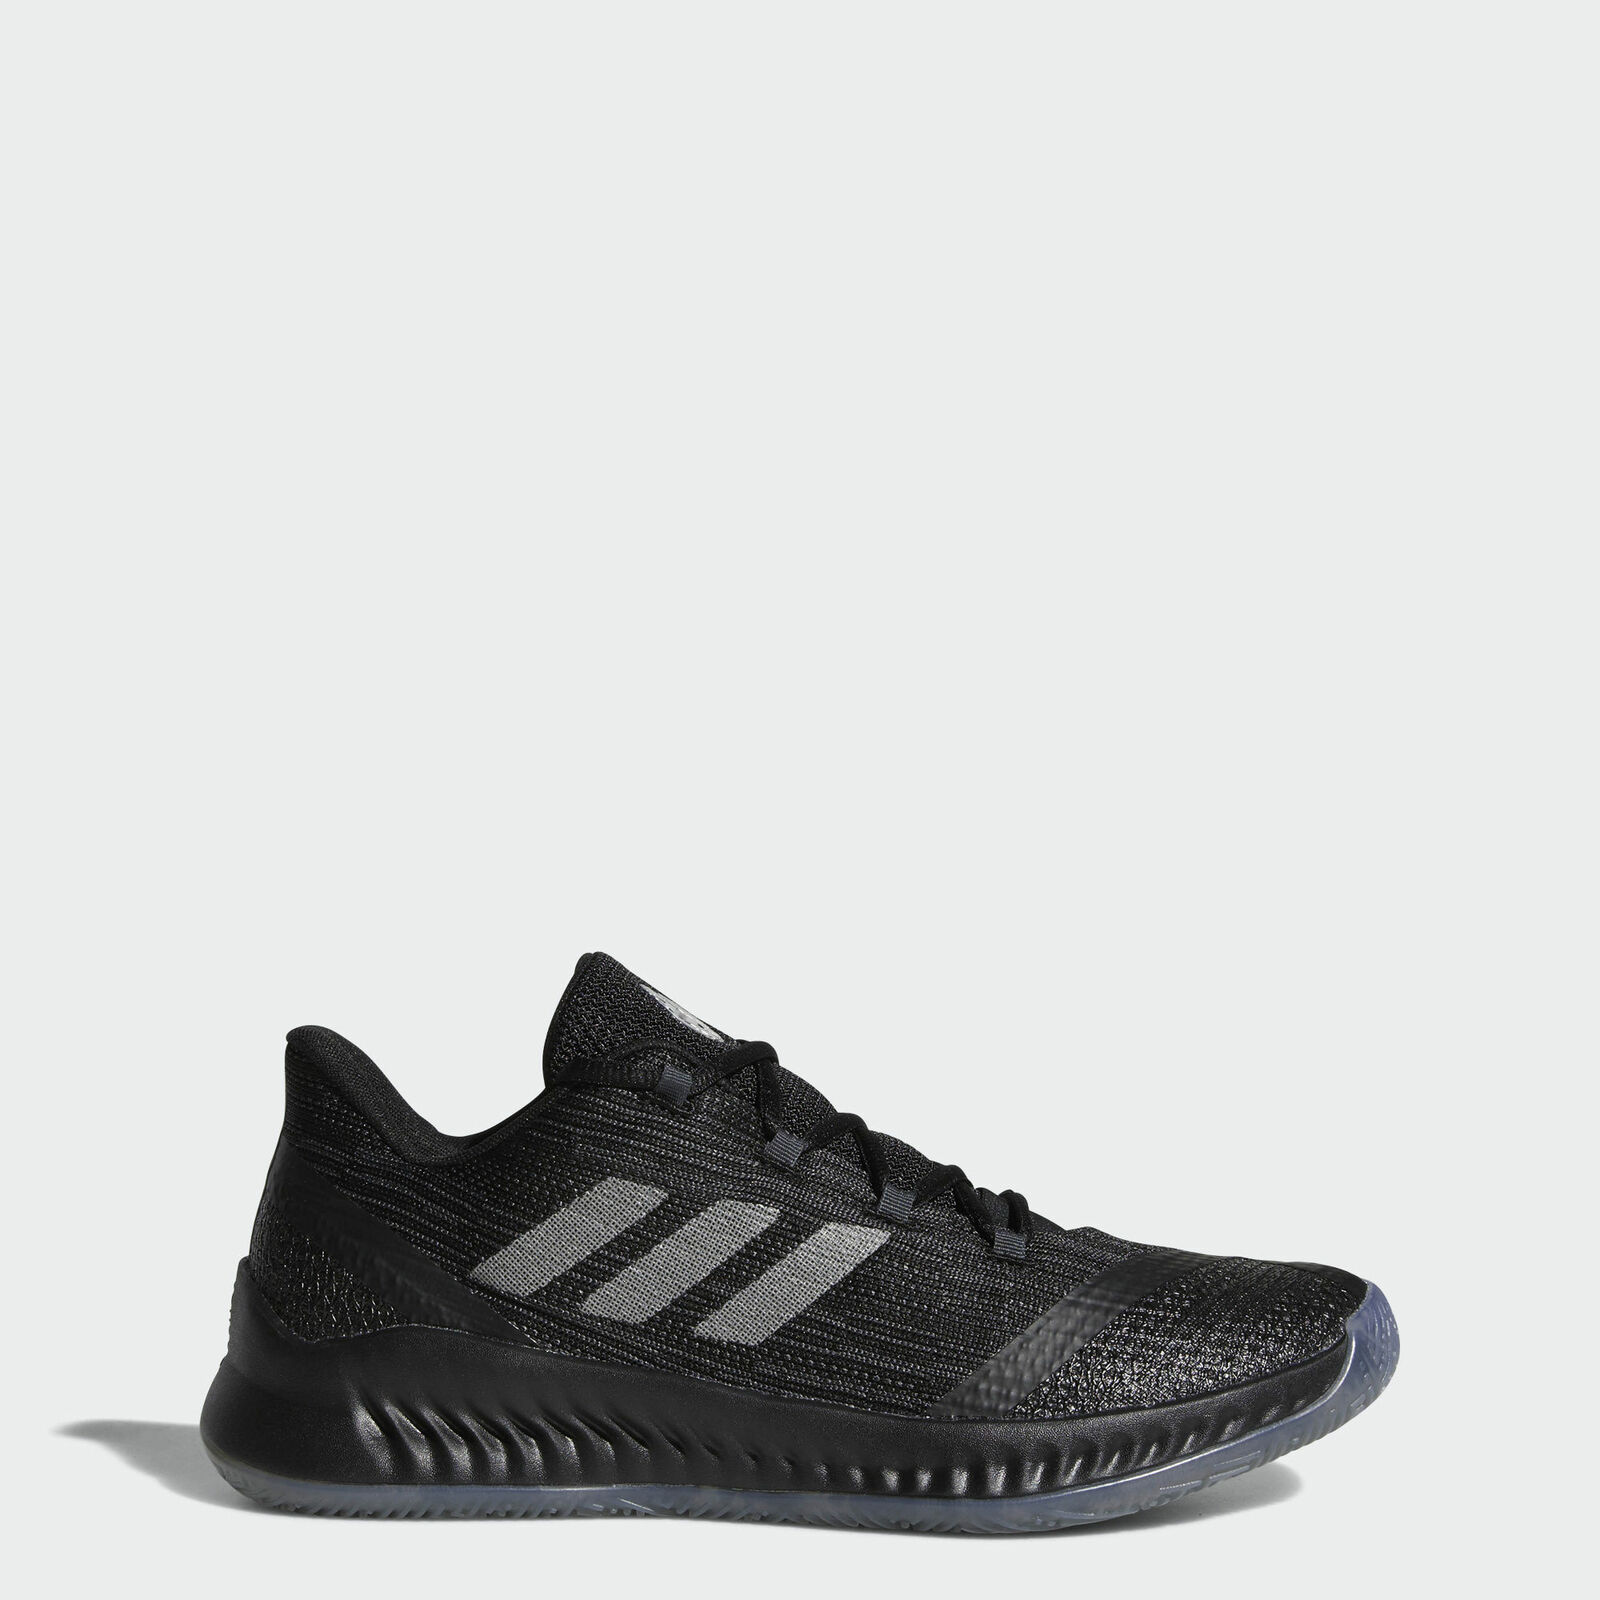 finest selection 66909 b8454 Score these , adidas Harden B E X Shoes Men s for as low as  44 !!! extra  20% off will come off at checkout !!